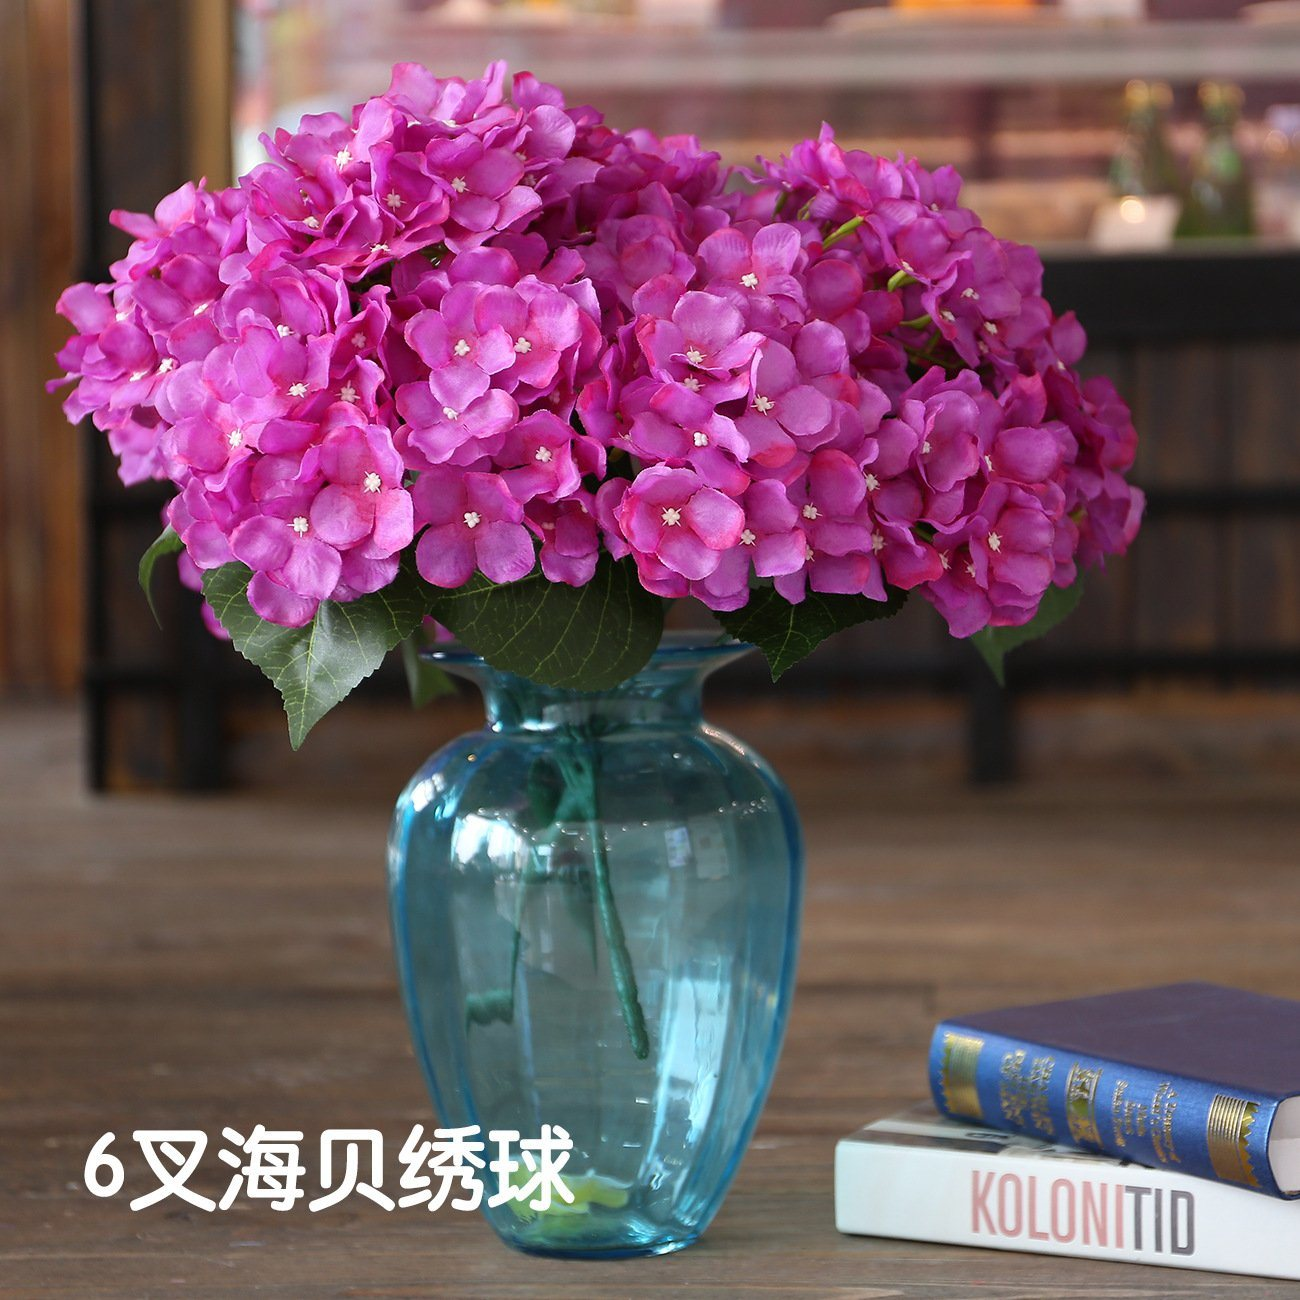 China 6 Head Bouquet Fake Wedding Artificial Hydrangea Flower Home Party Dried Decor New